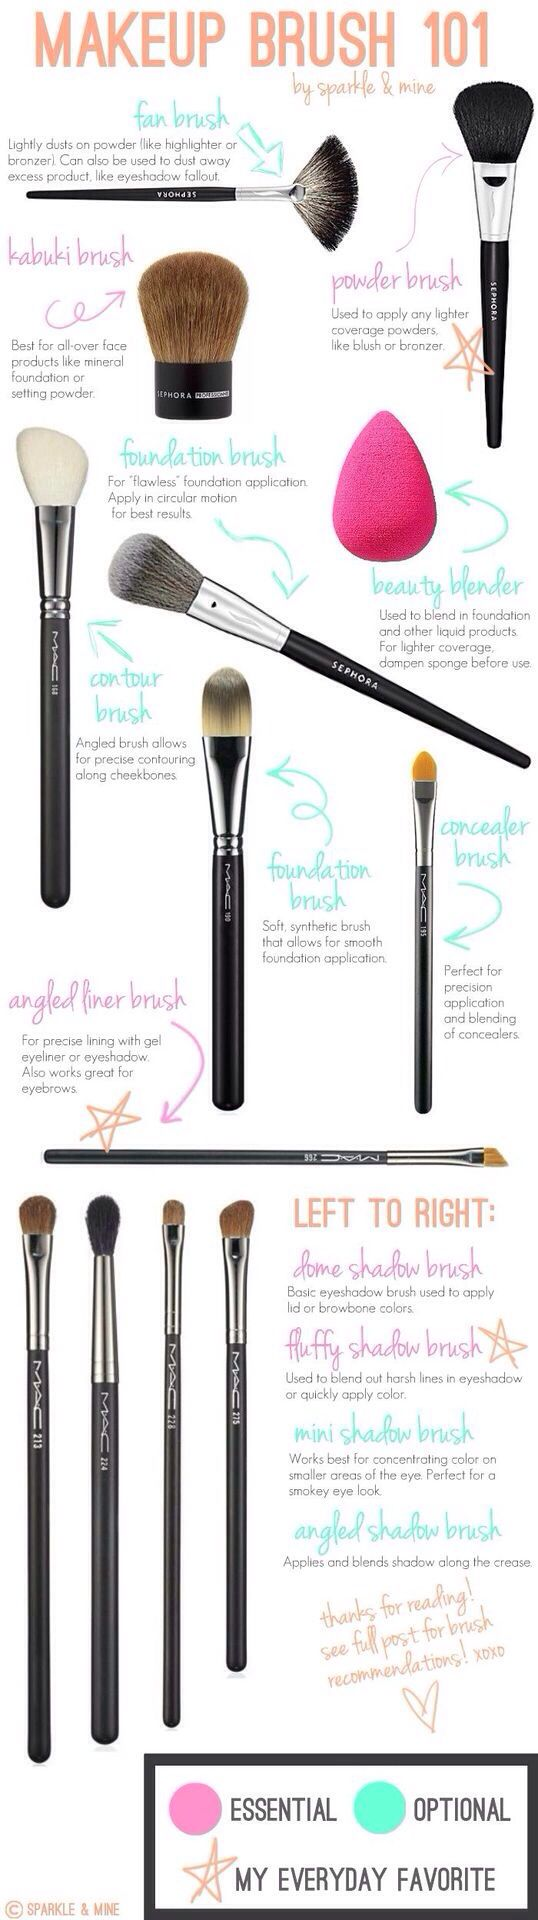 To create makeup artist looks; you must use tools of the trade. Check out the video for brush application tips and the brushes I use and love on my blog.